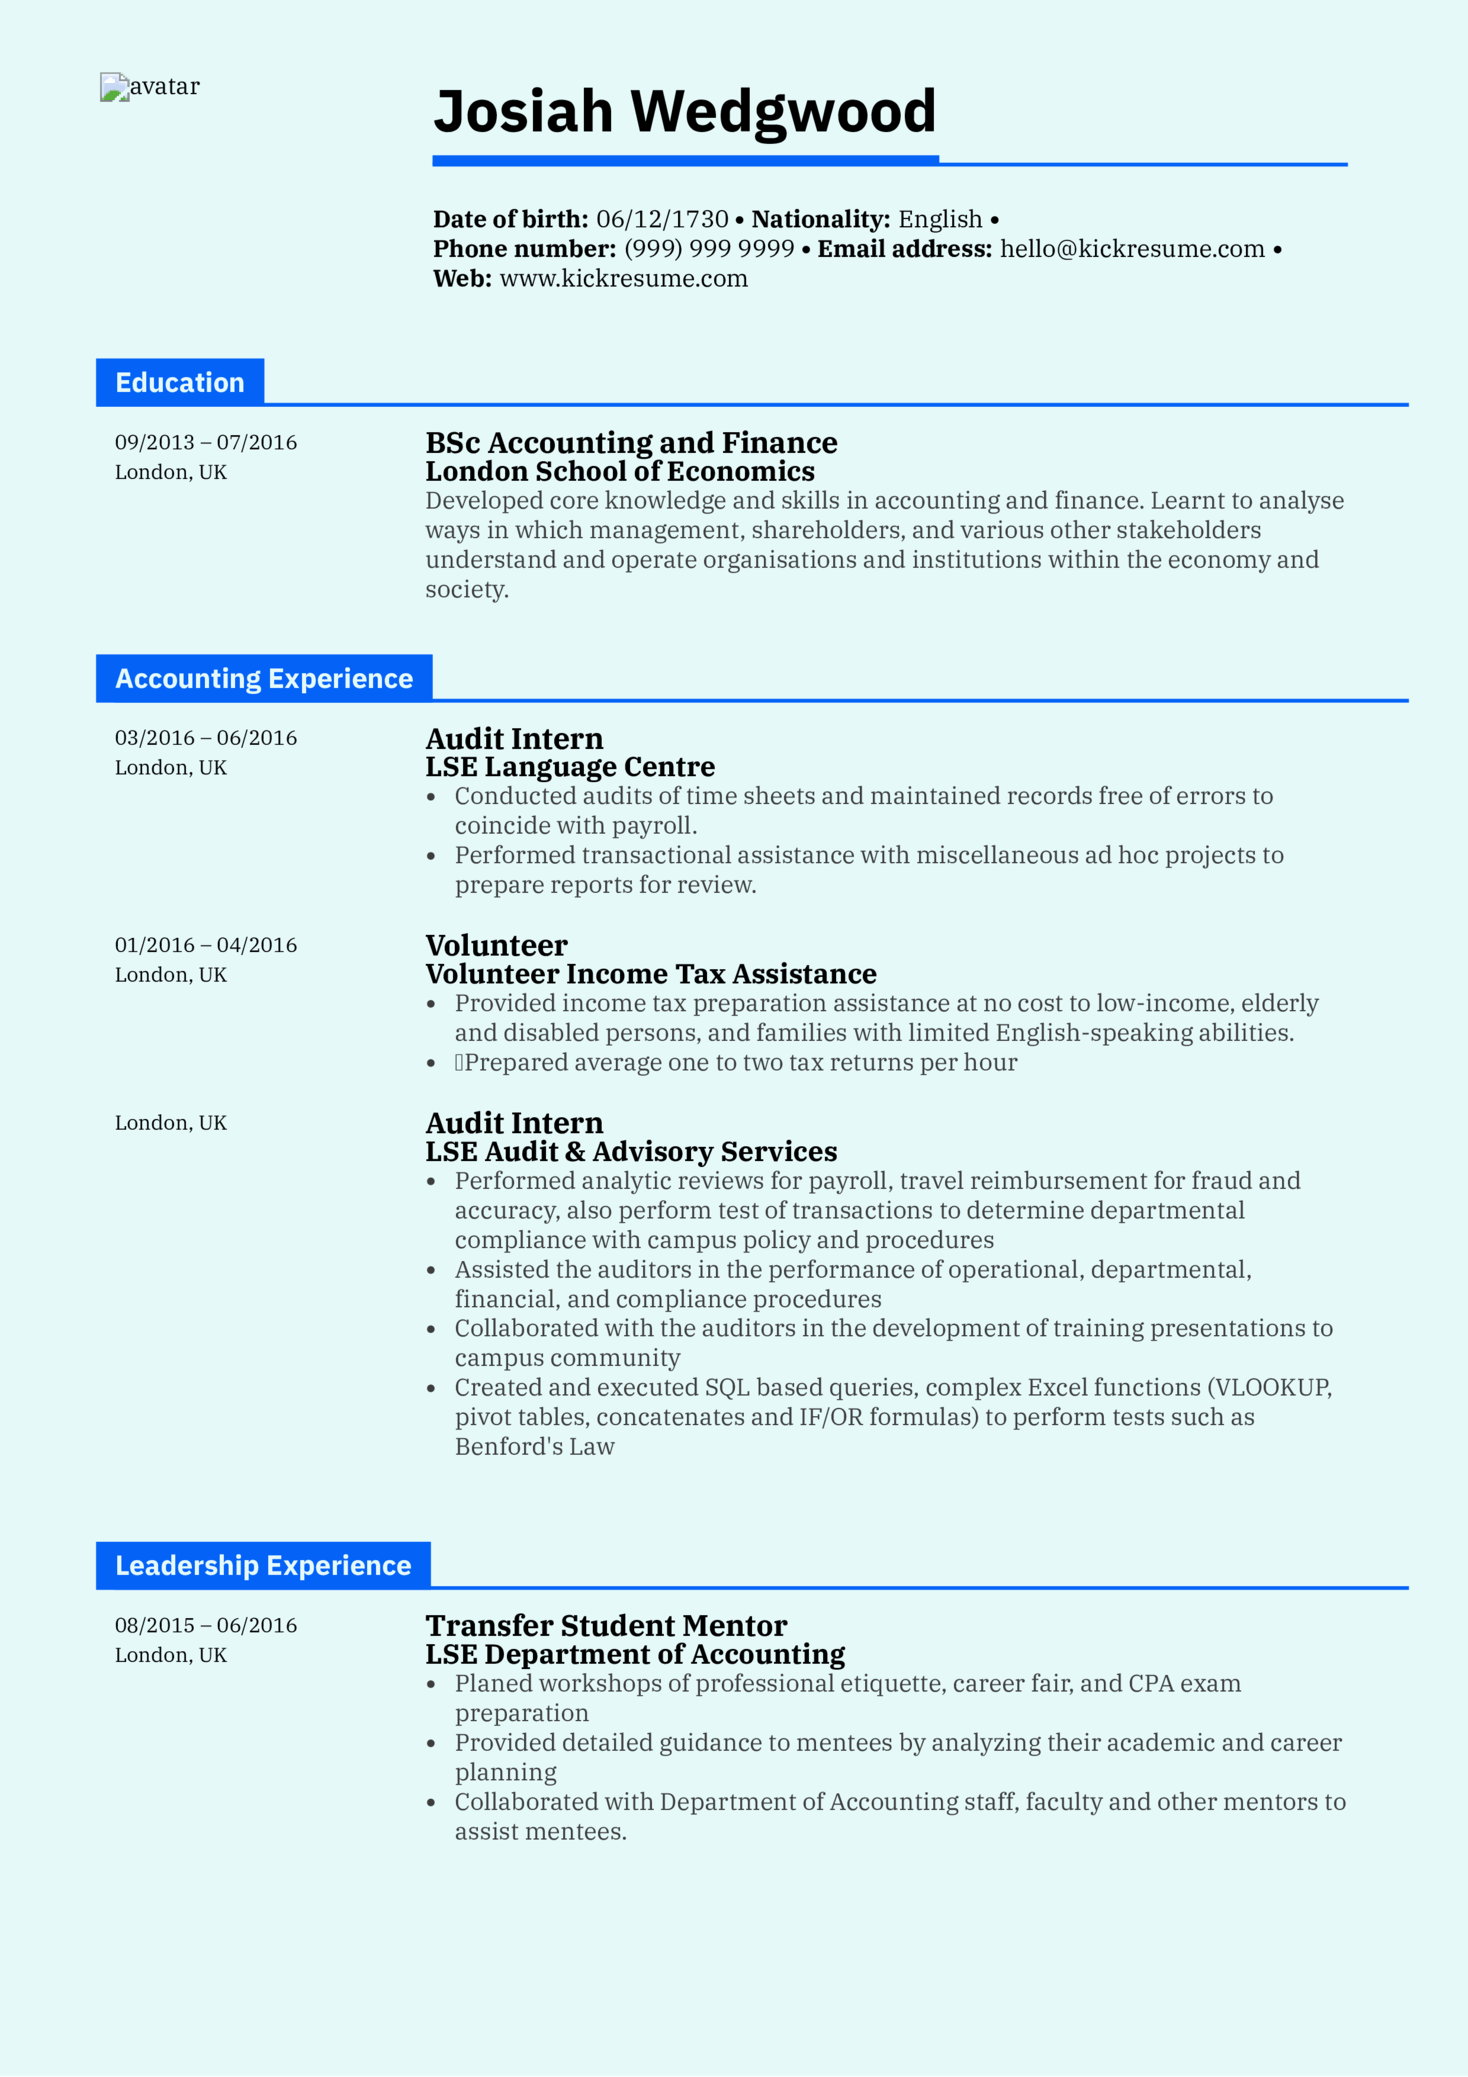 Graduate Accountant Resume Sample Kickresume